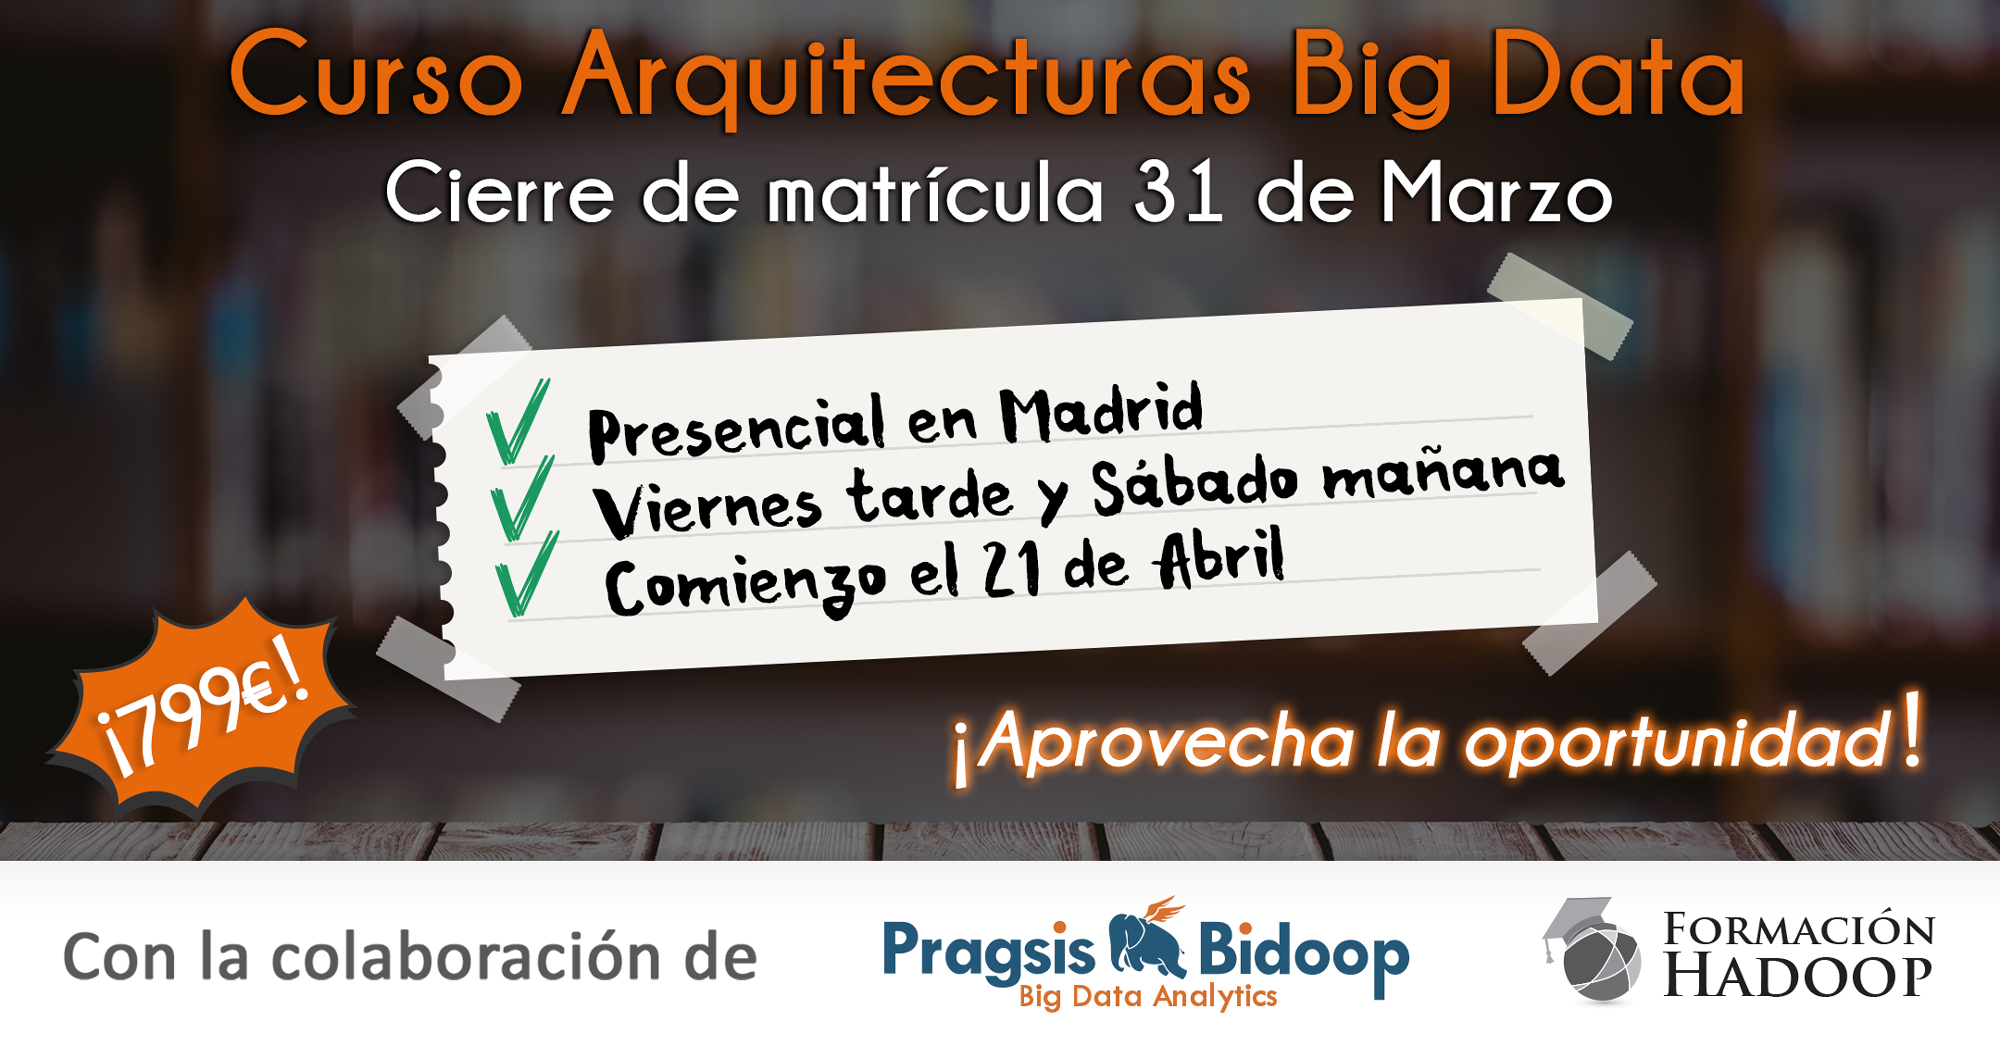 Curso Arquitecturas Big Data